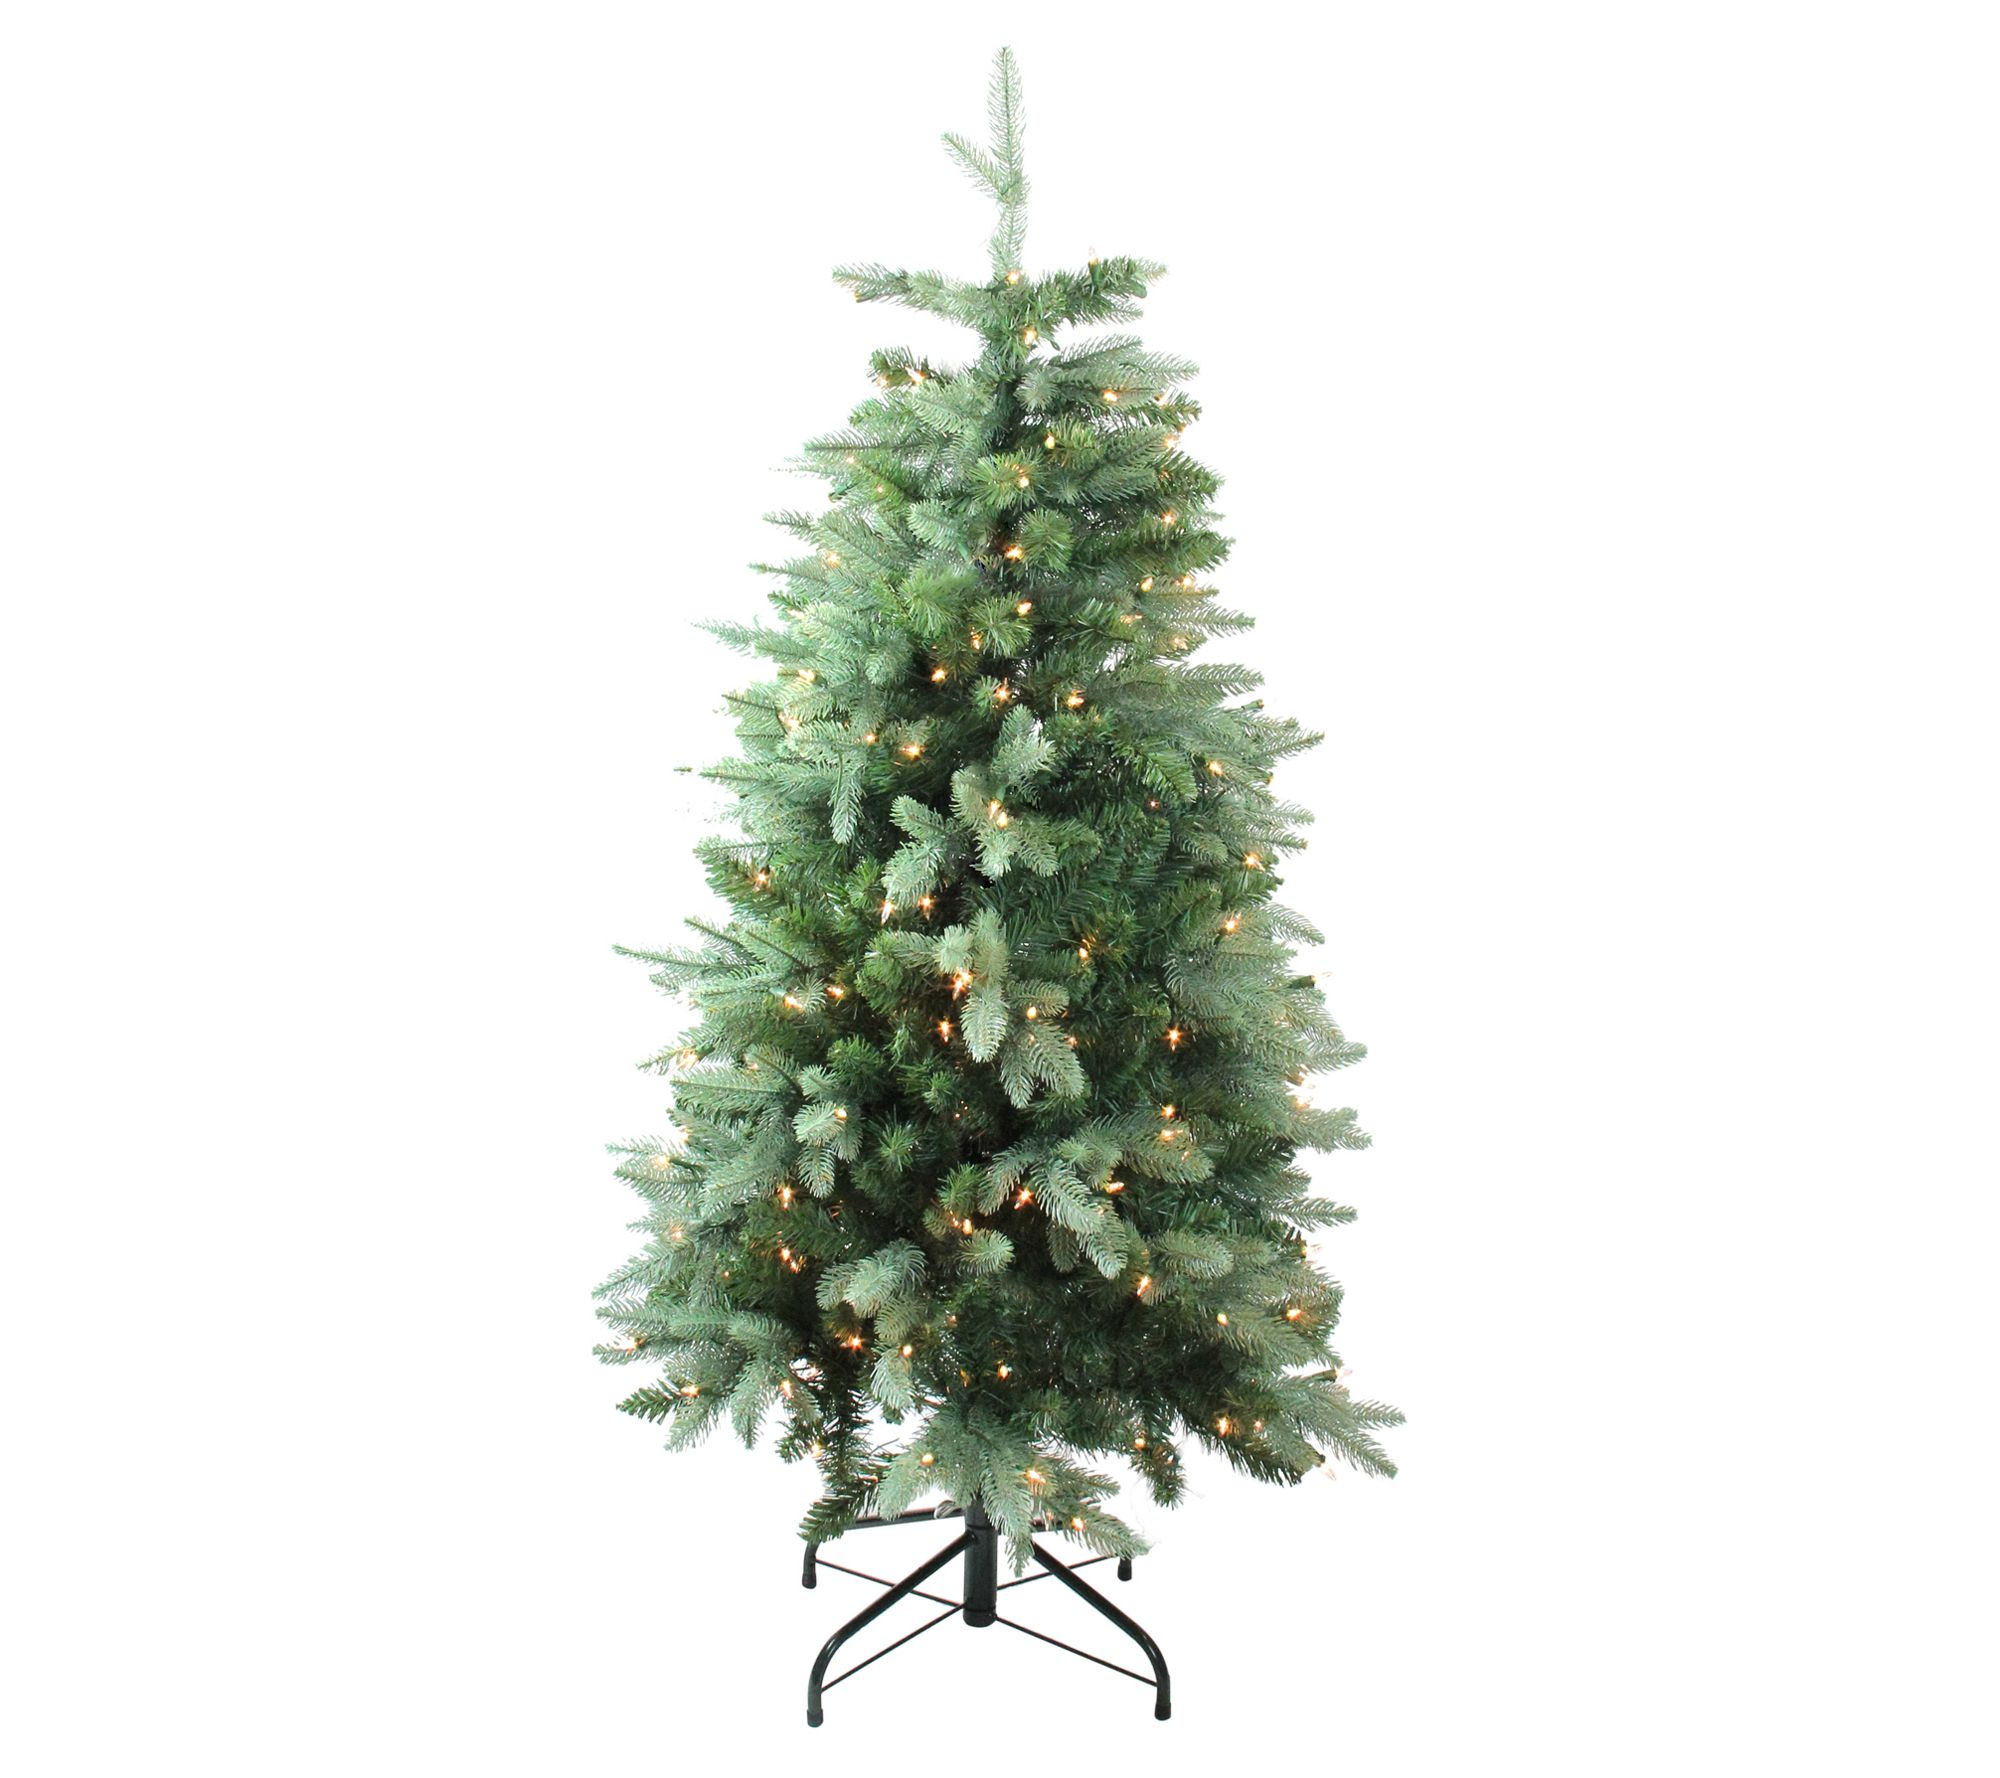 Northlight Fresh Cut Carolina Frasier Fir Christmas Tree Qvc Com